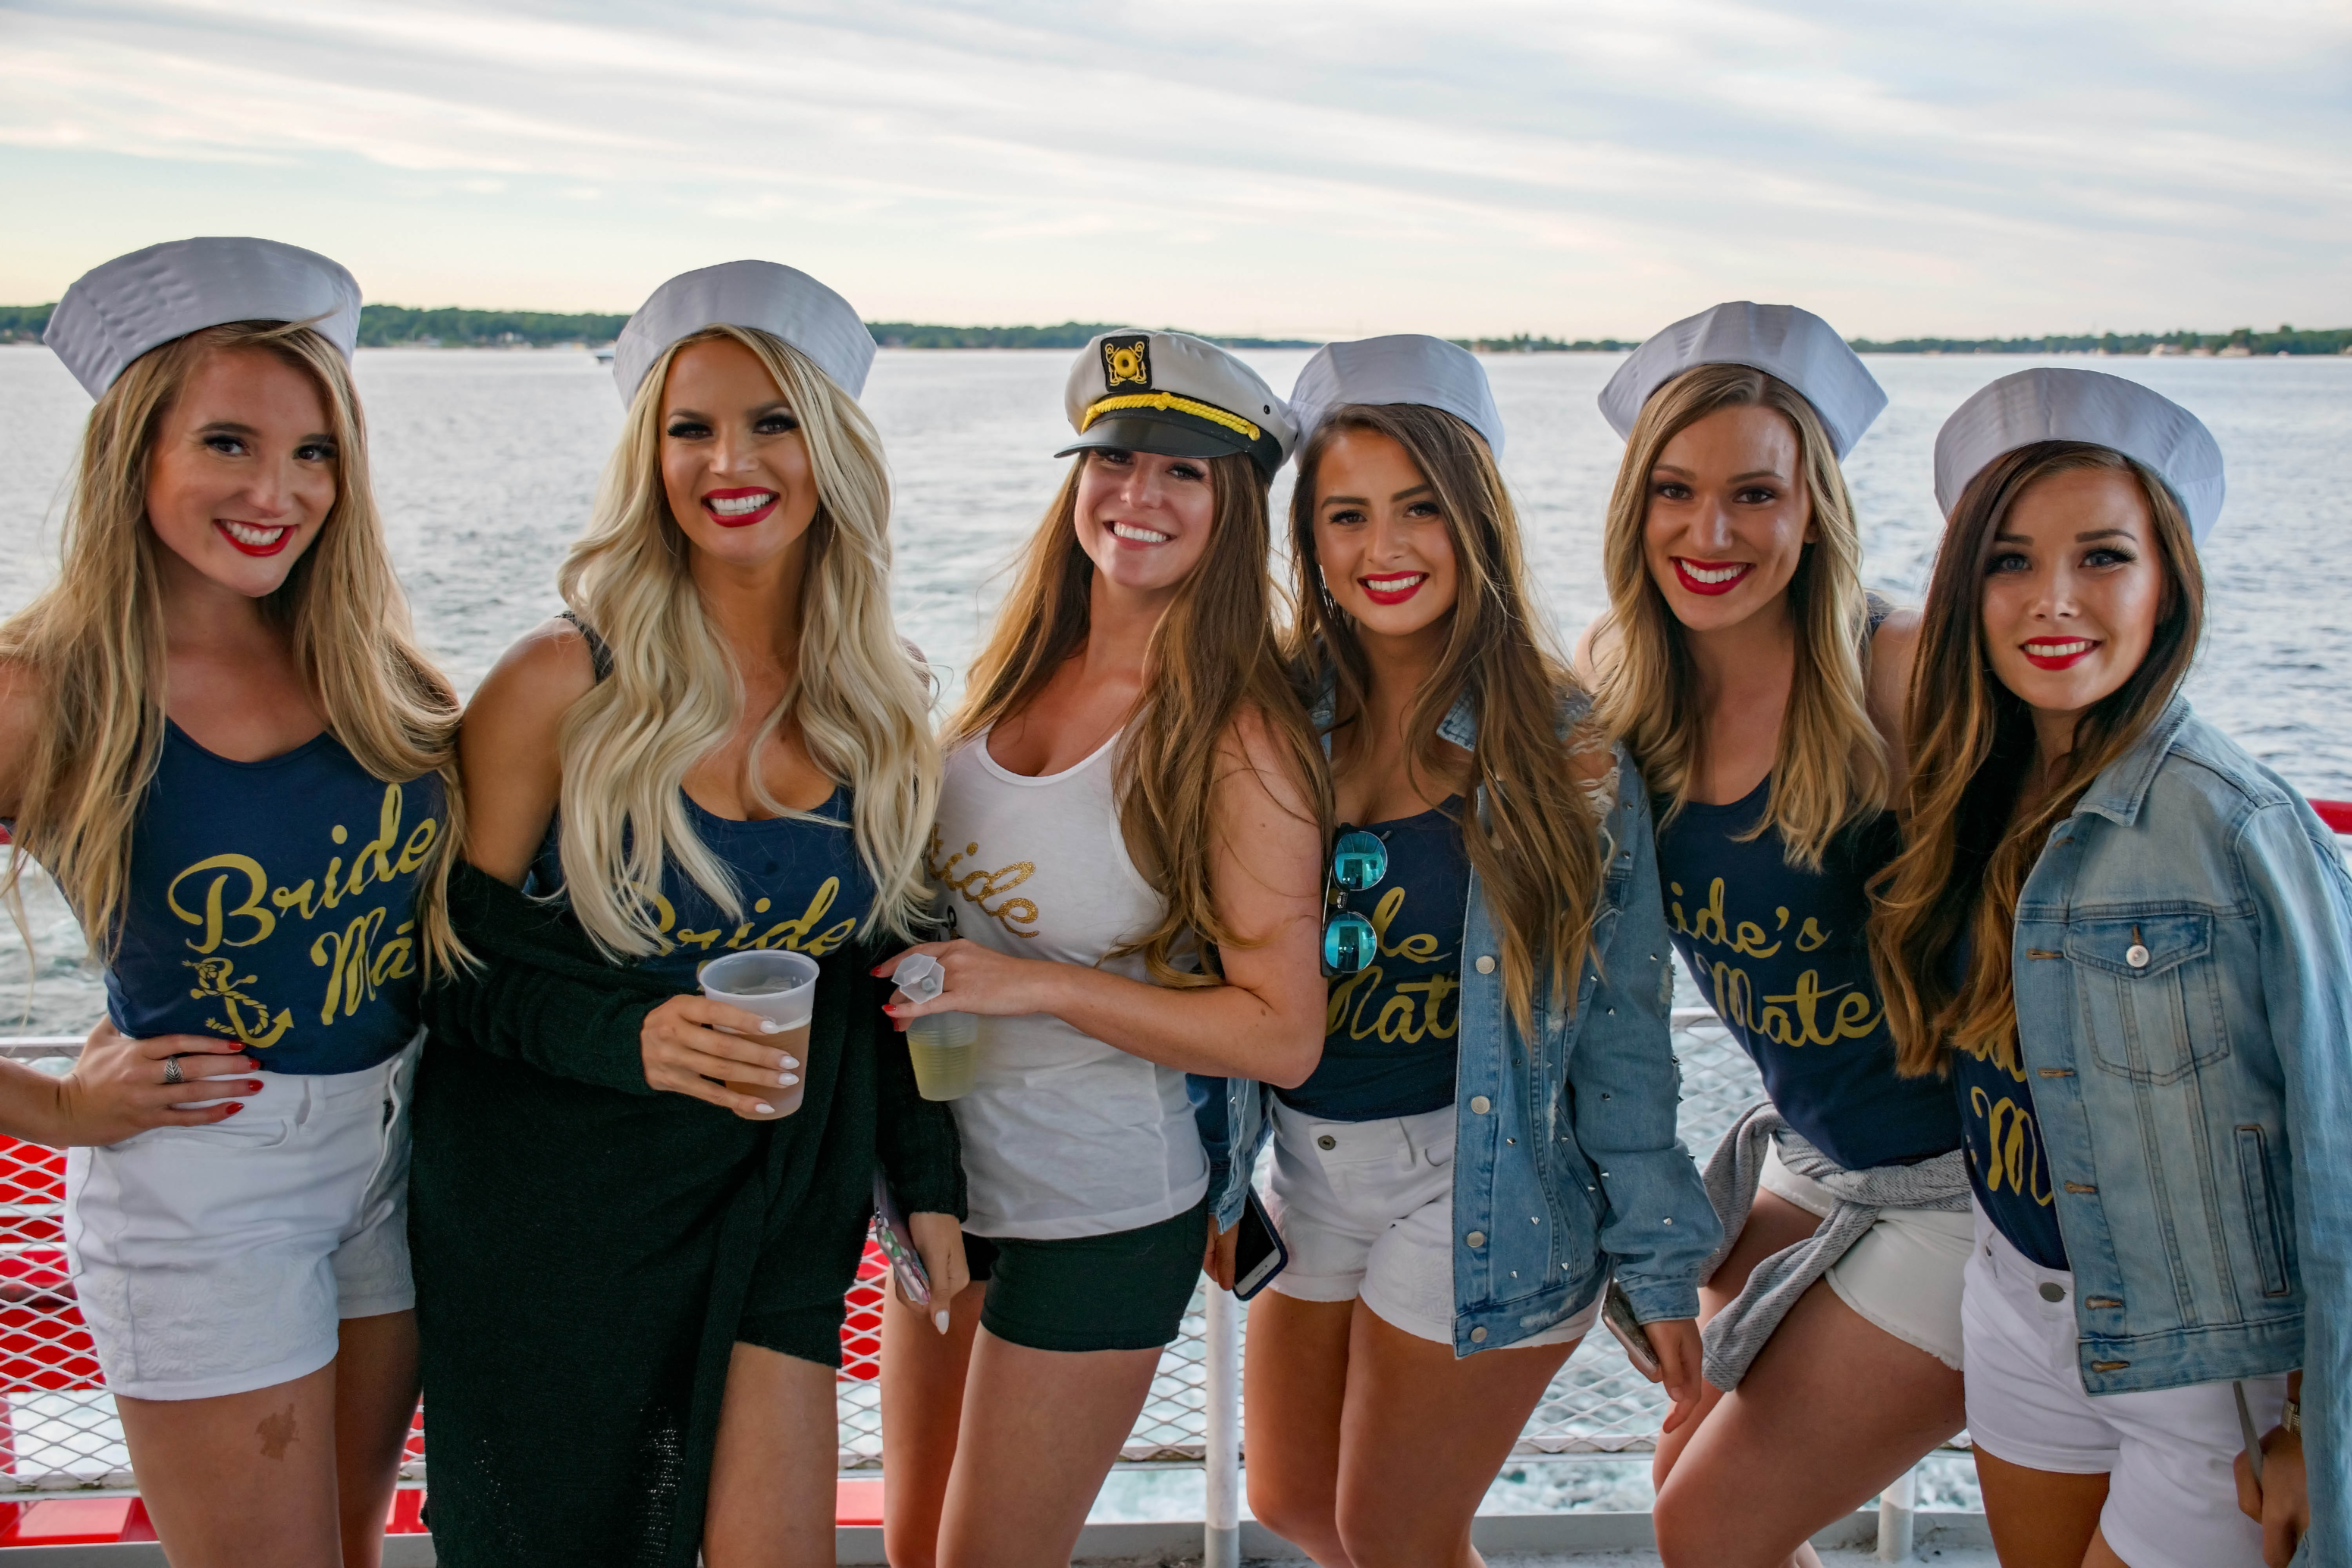 Bachelorette Party on Uncle Sams Boat Cruise in Alex Bay, NY 2